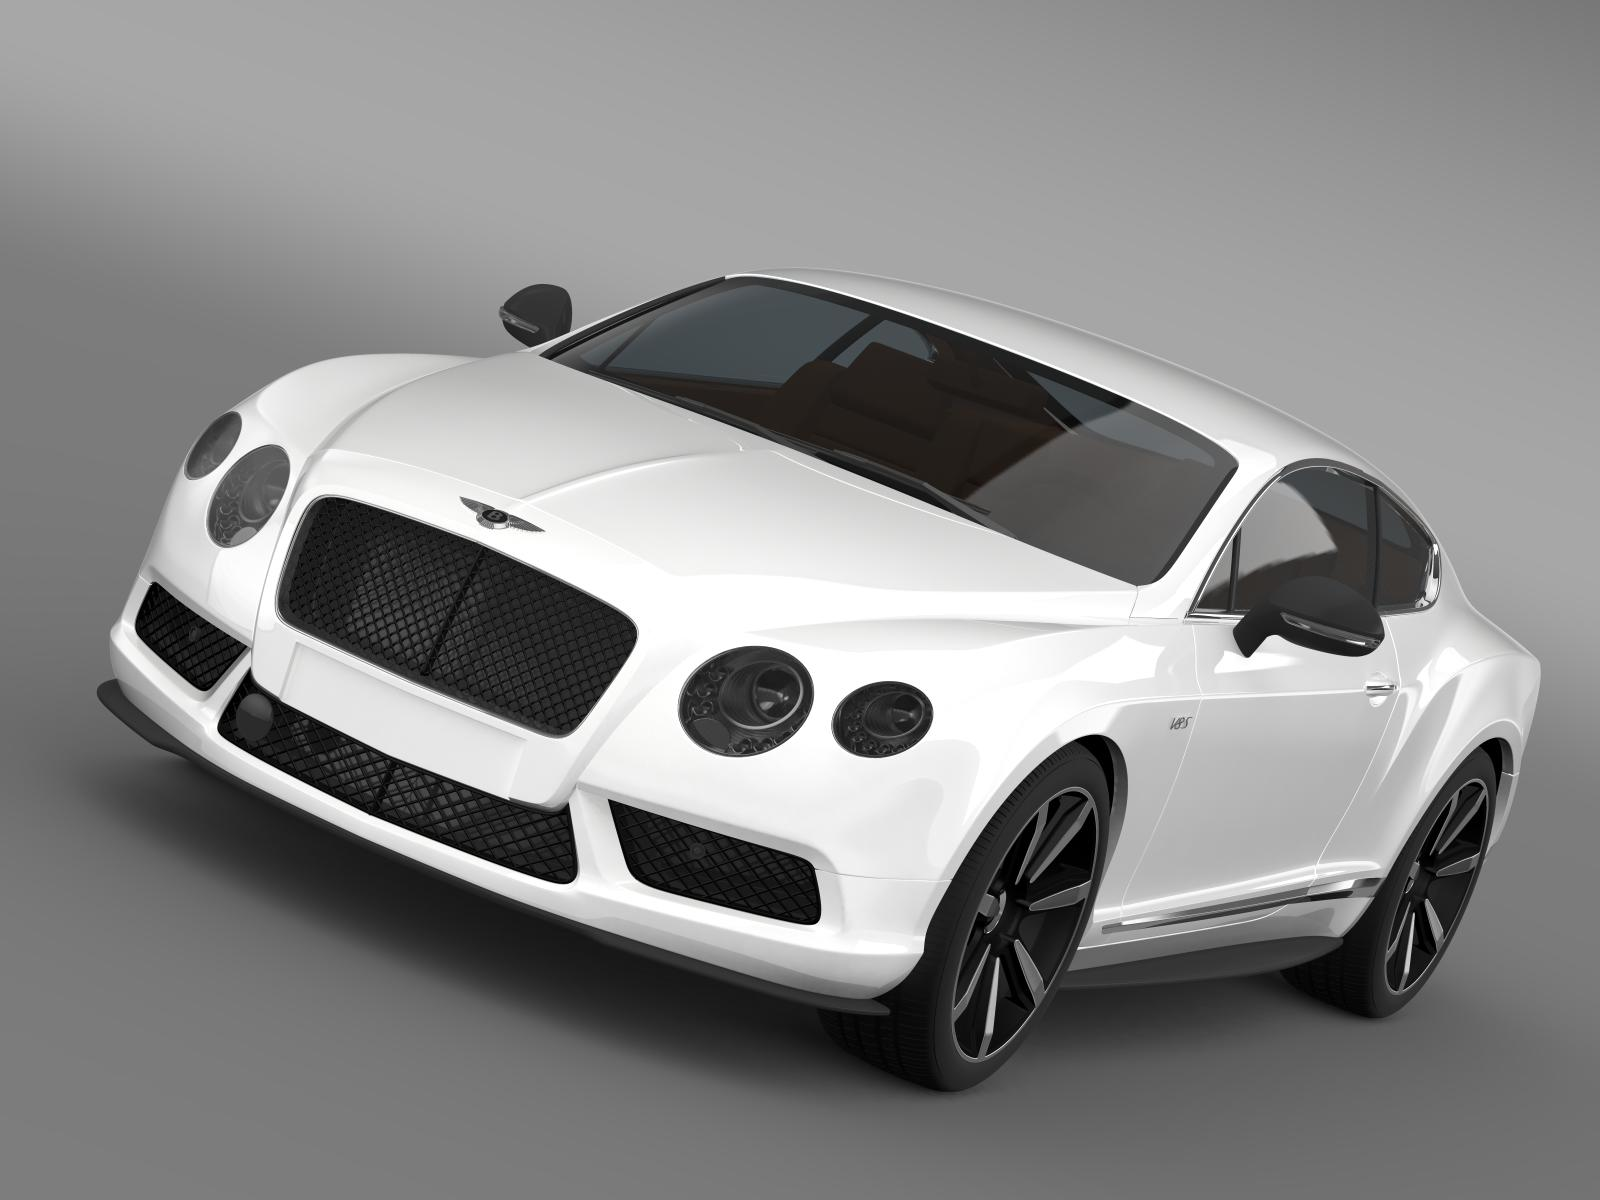 bentley continental gt v8 s coupe 2014 3d model 3ds max fbx c4d lwo ma mb hrc xsi obj 164058